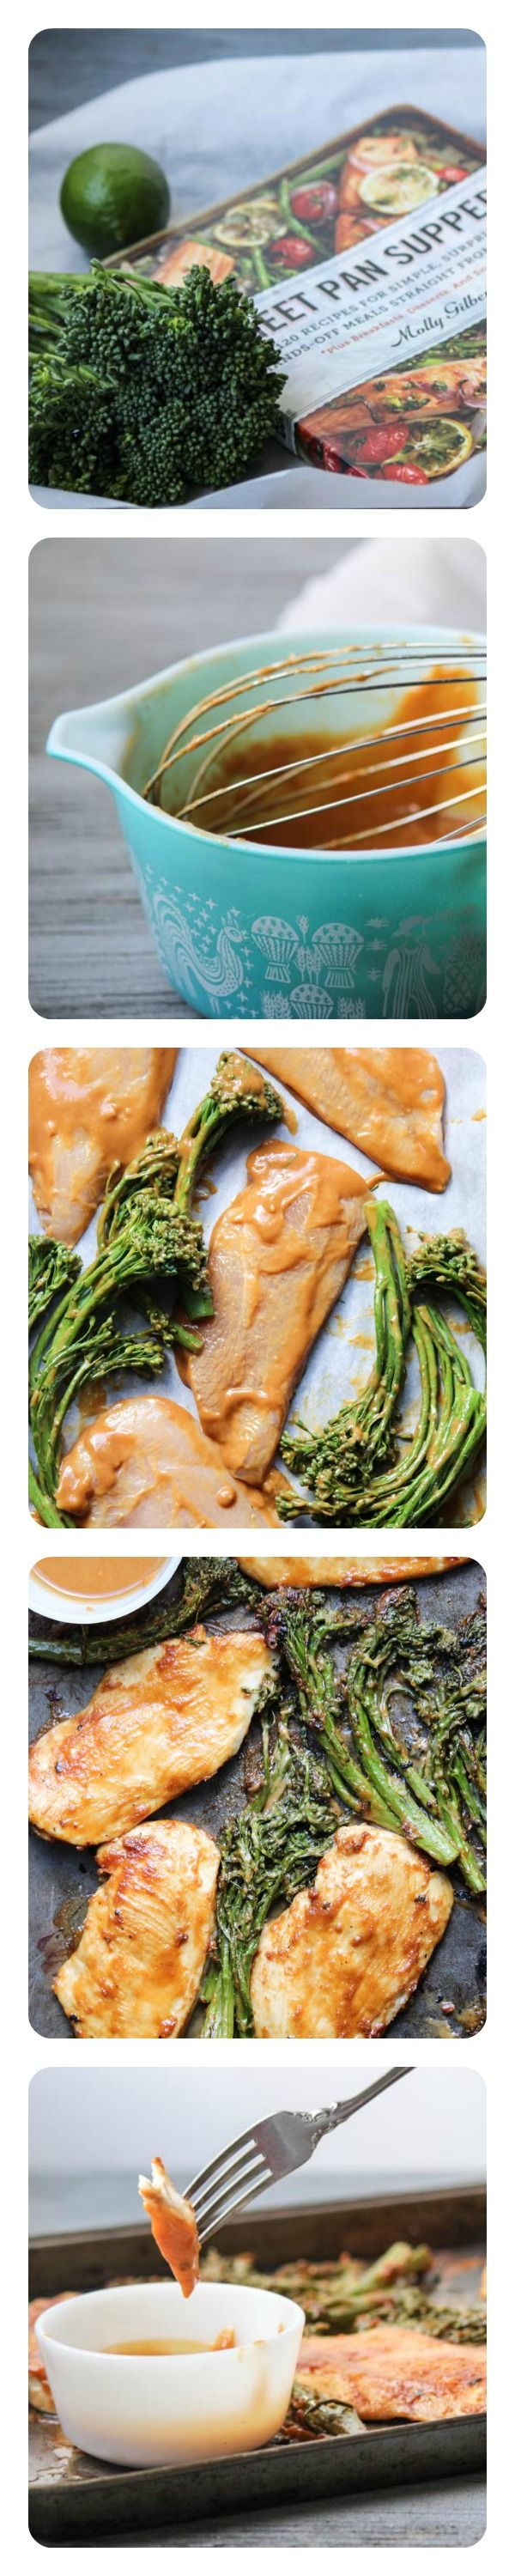 Quick Chicken and Broccoli with spicy peanut sauce - is done in 12 minutes. #WeekdaySupper never looked so good and easy.